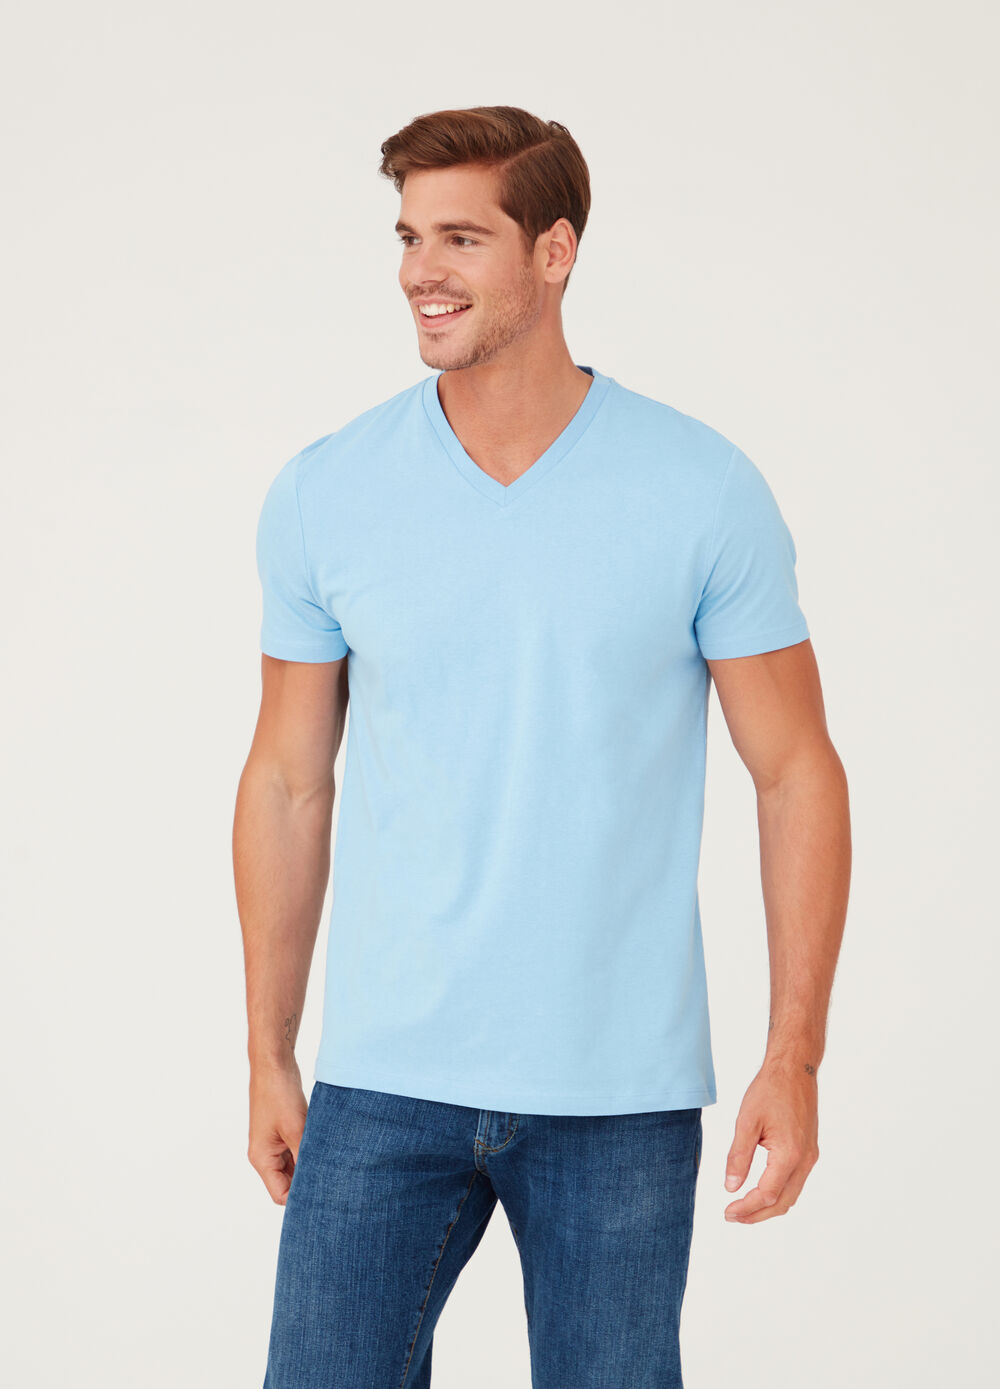 V-neck T-shirt in soft jersey